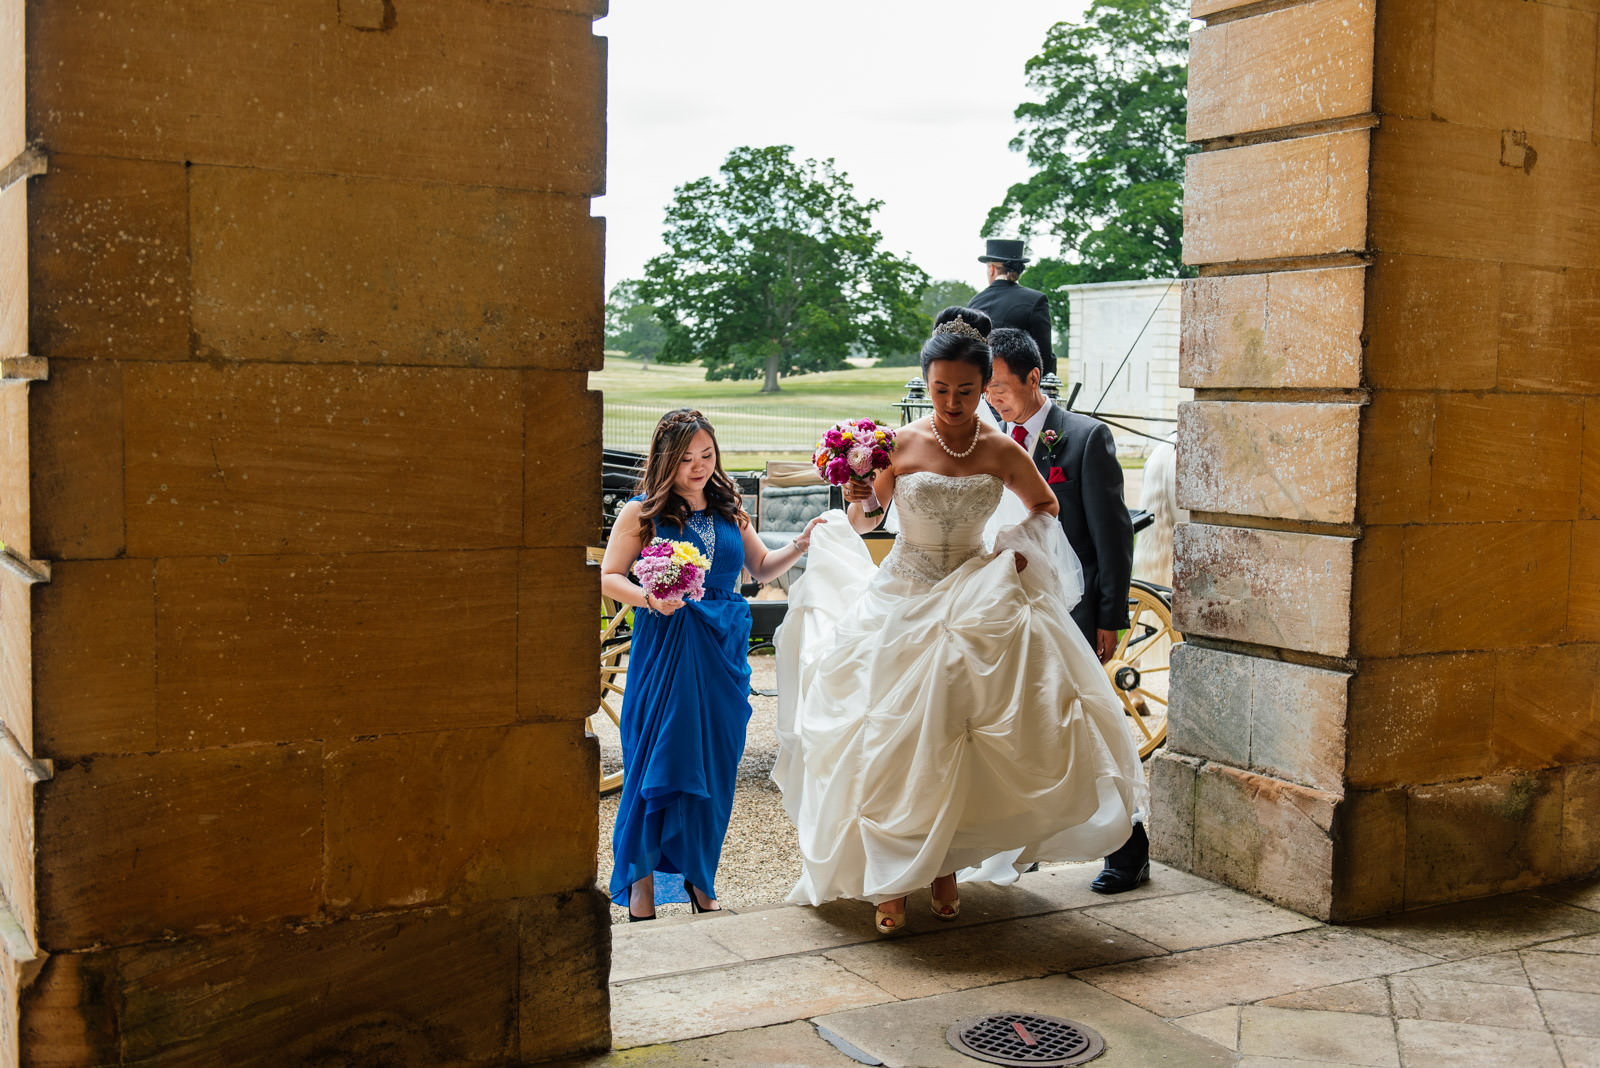 bride and bridesmaids arriving at wedding venue